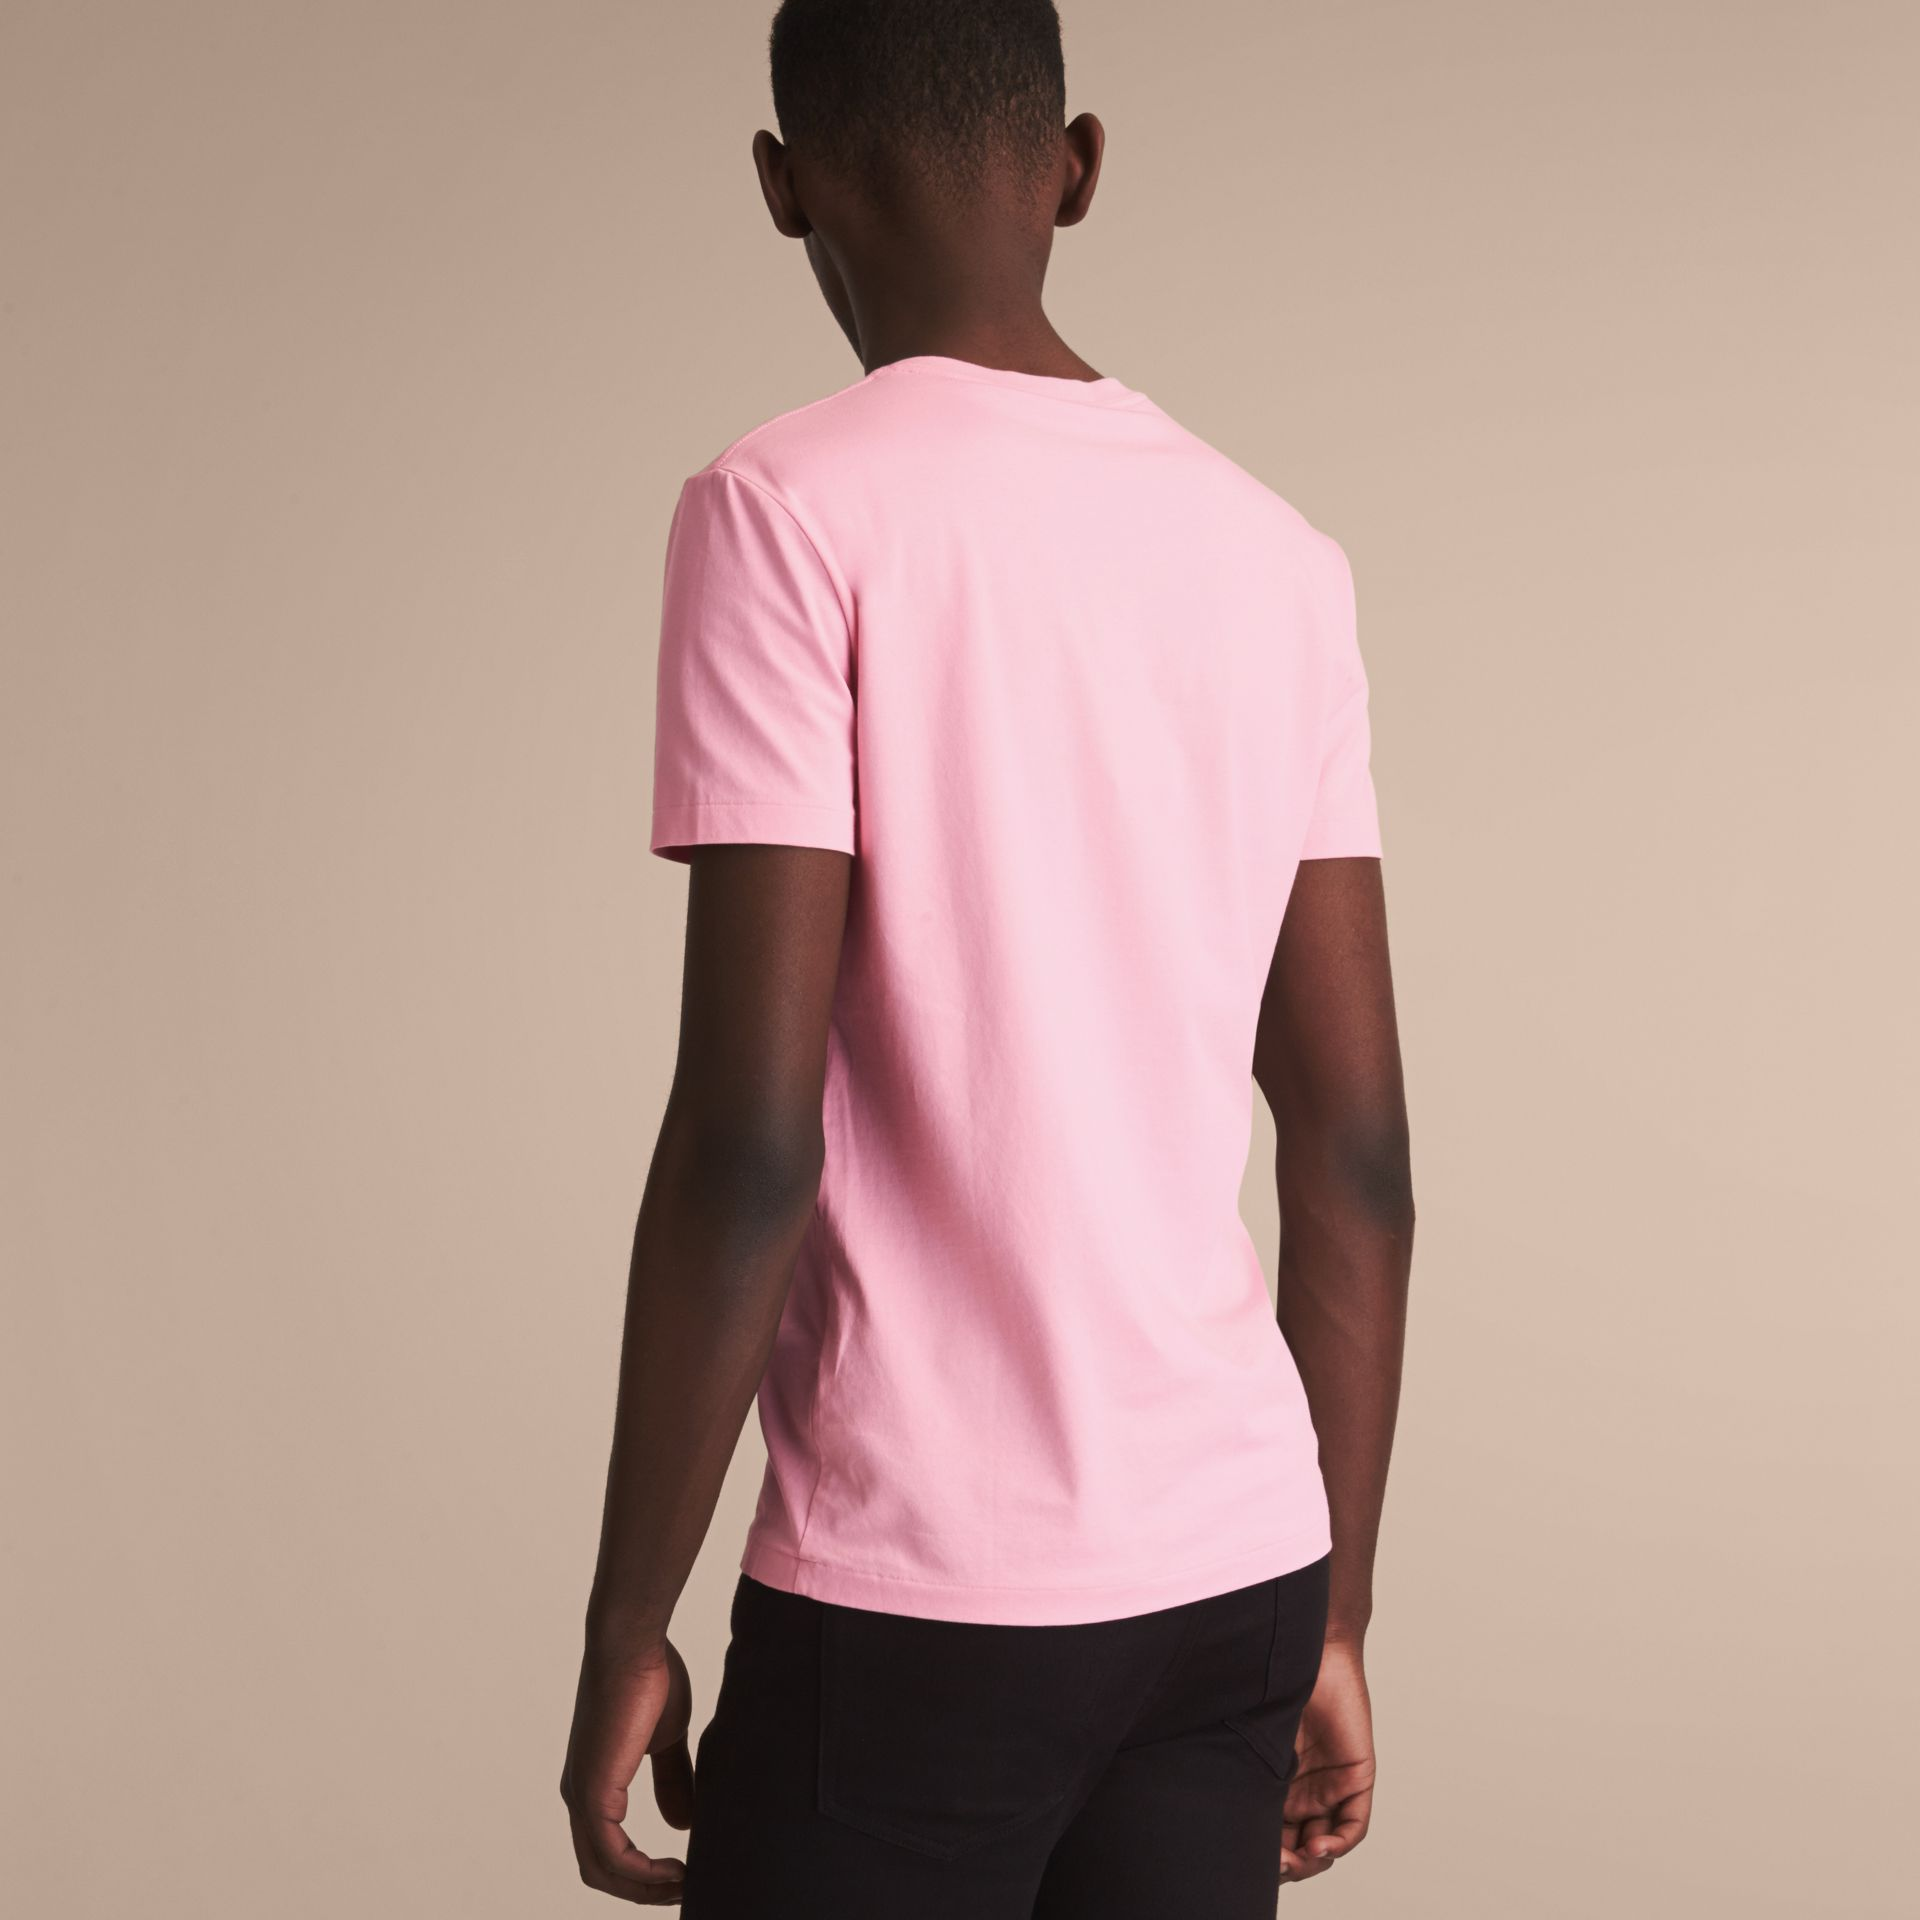 Cotton V-neck T-shirt in Light Pink - Men | Burberry - gallery image 2